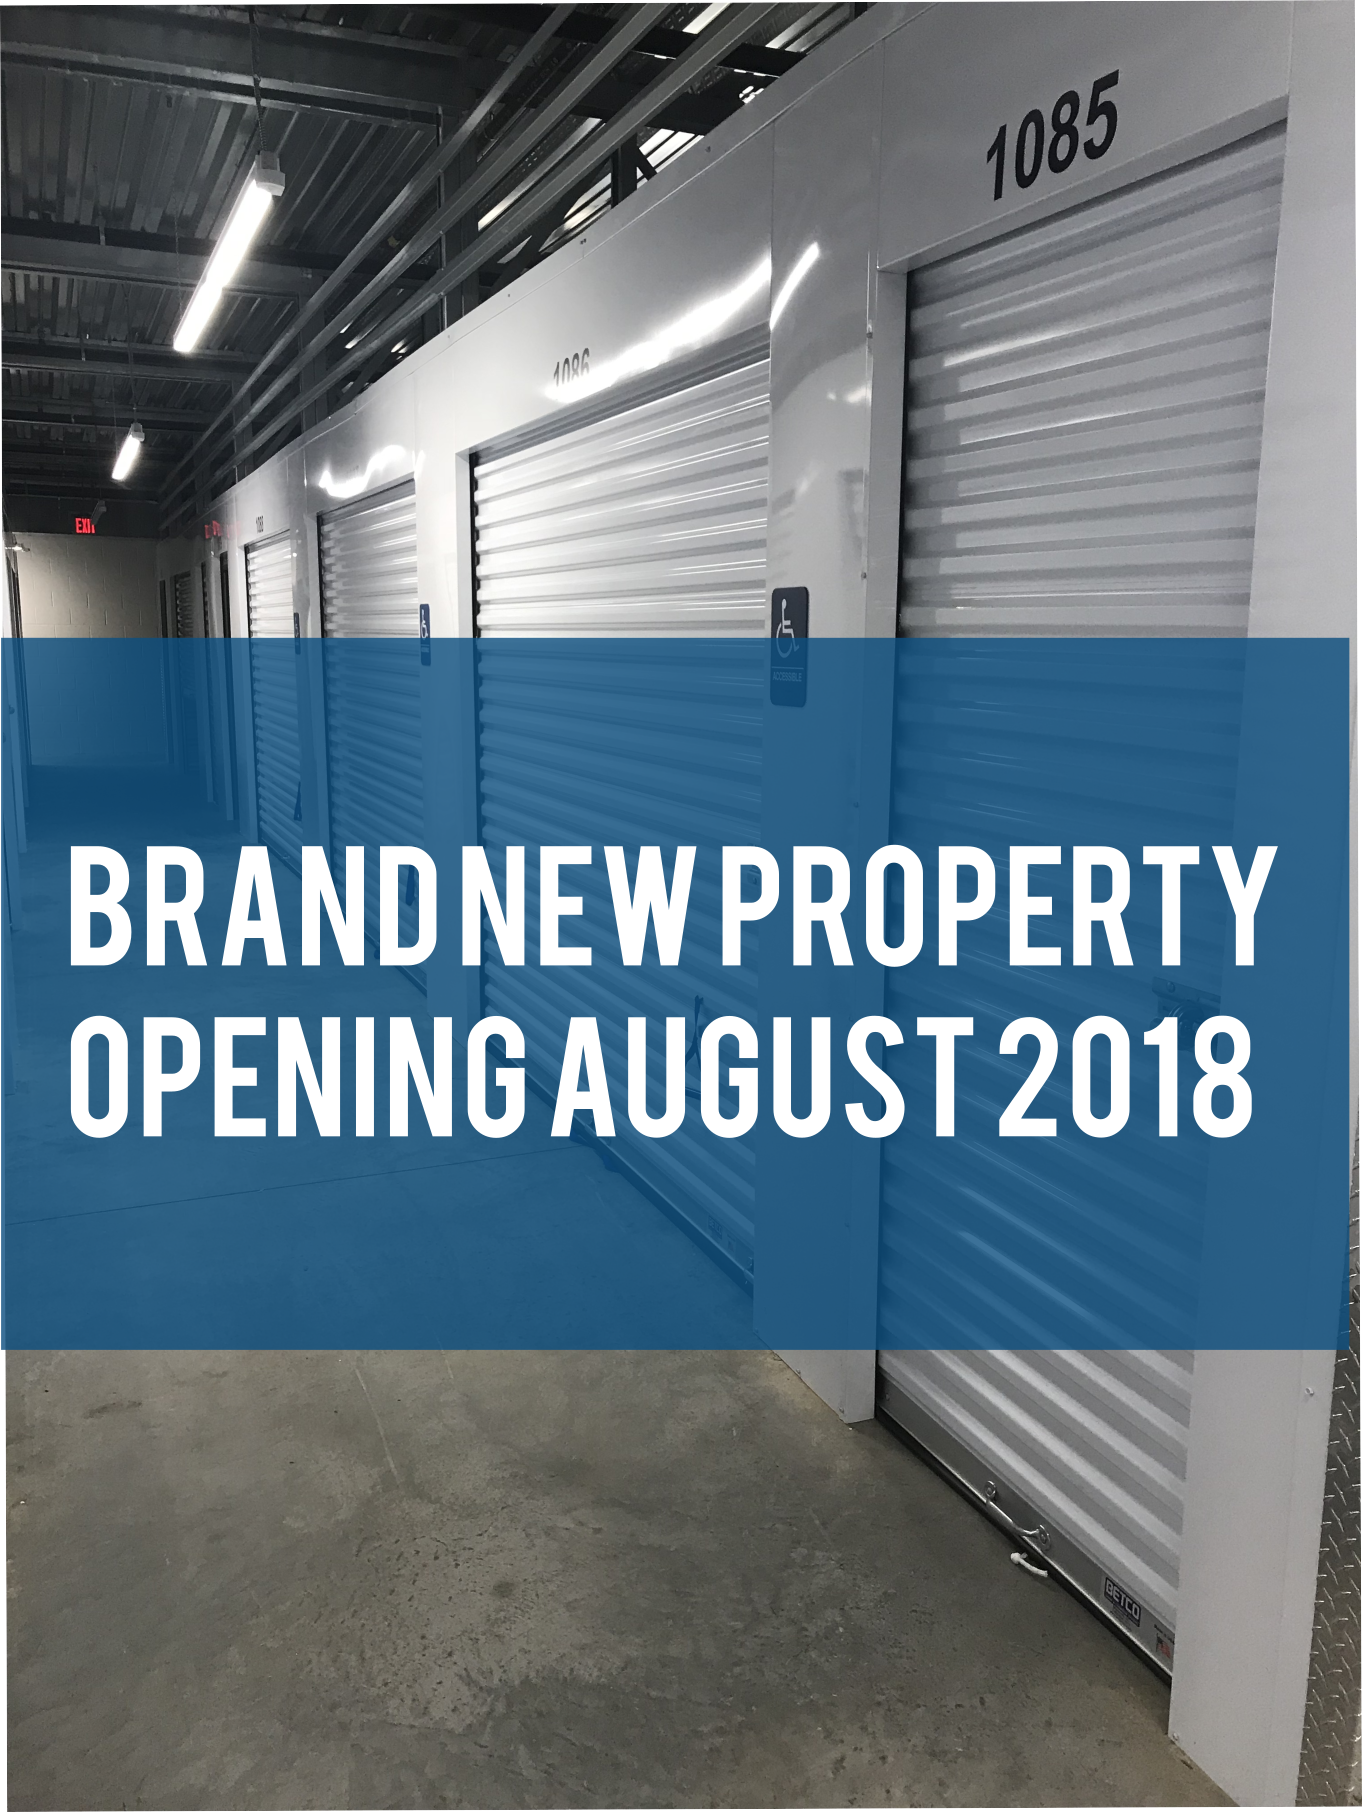 Opening August 2018